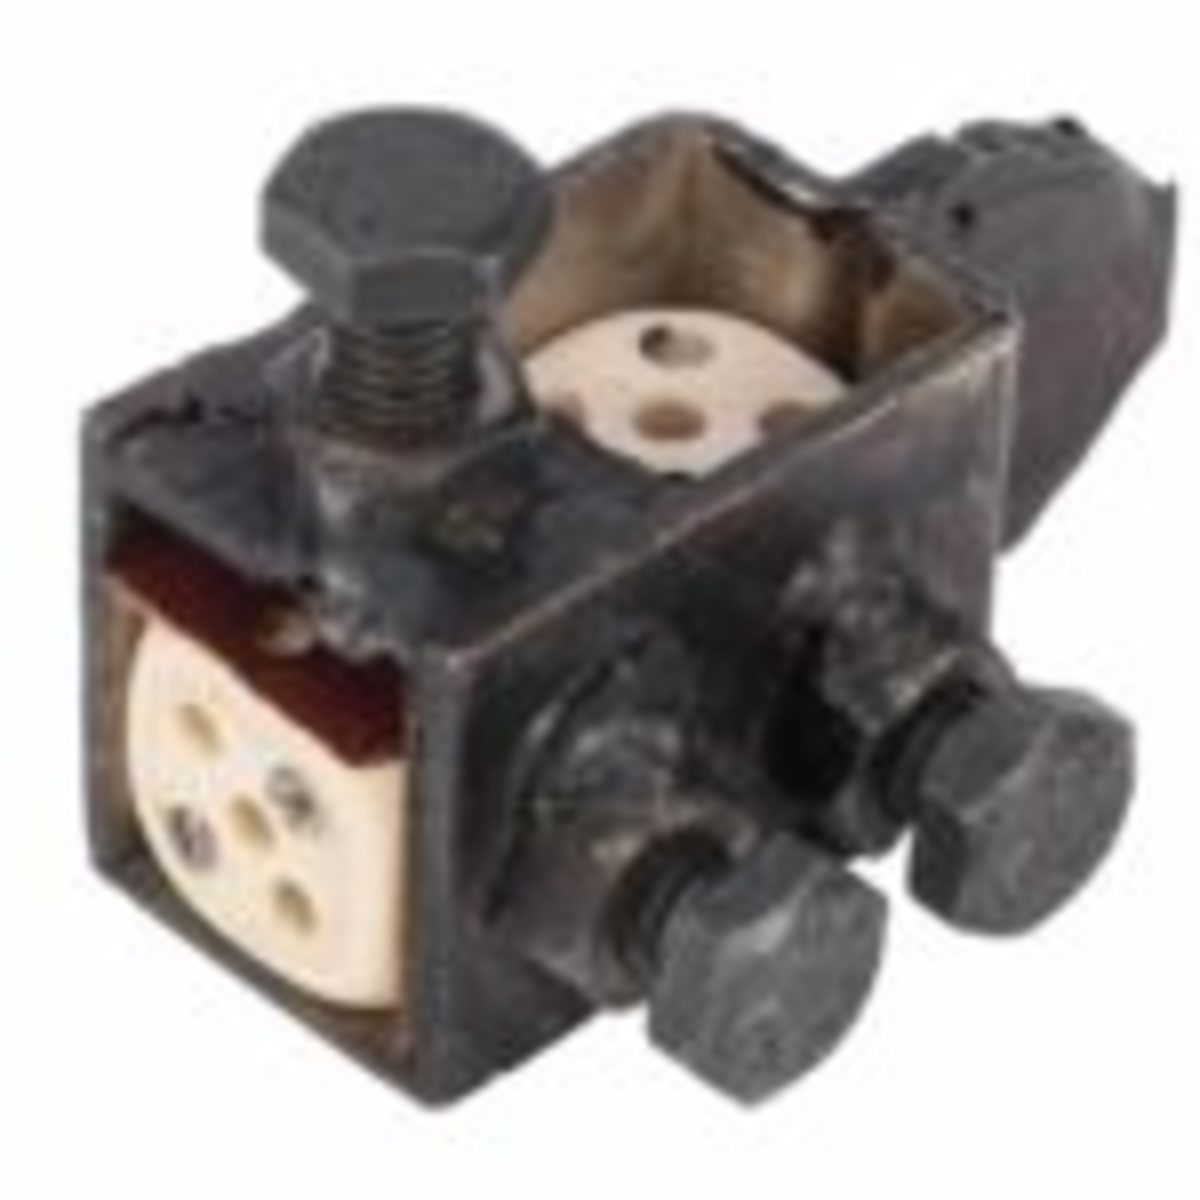 Jig for making crooked dice, with pair of dice, $1,140. Photo courtesy Potter & Potter Auctions.